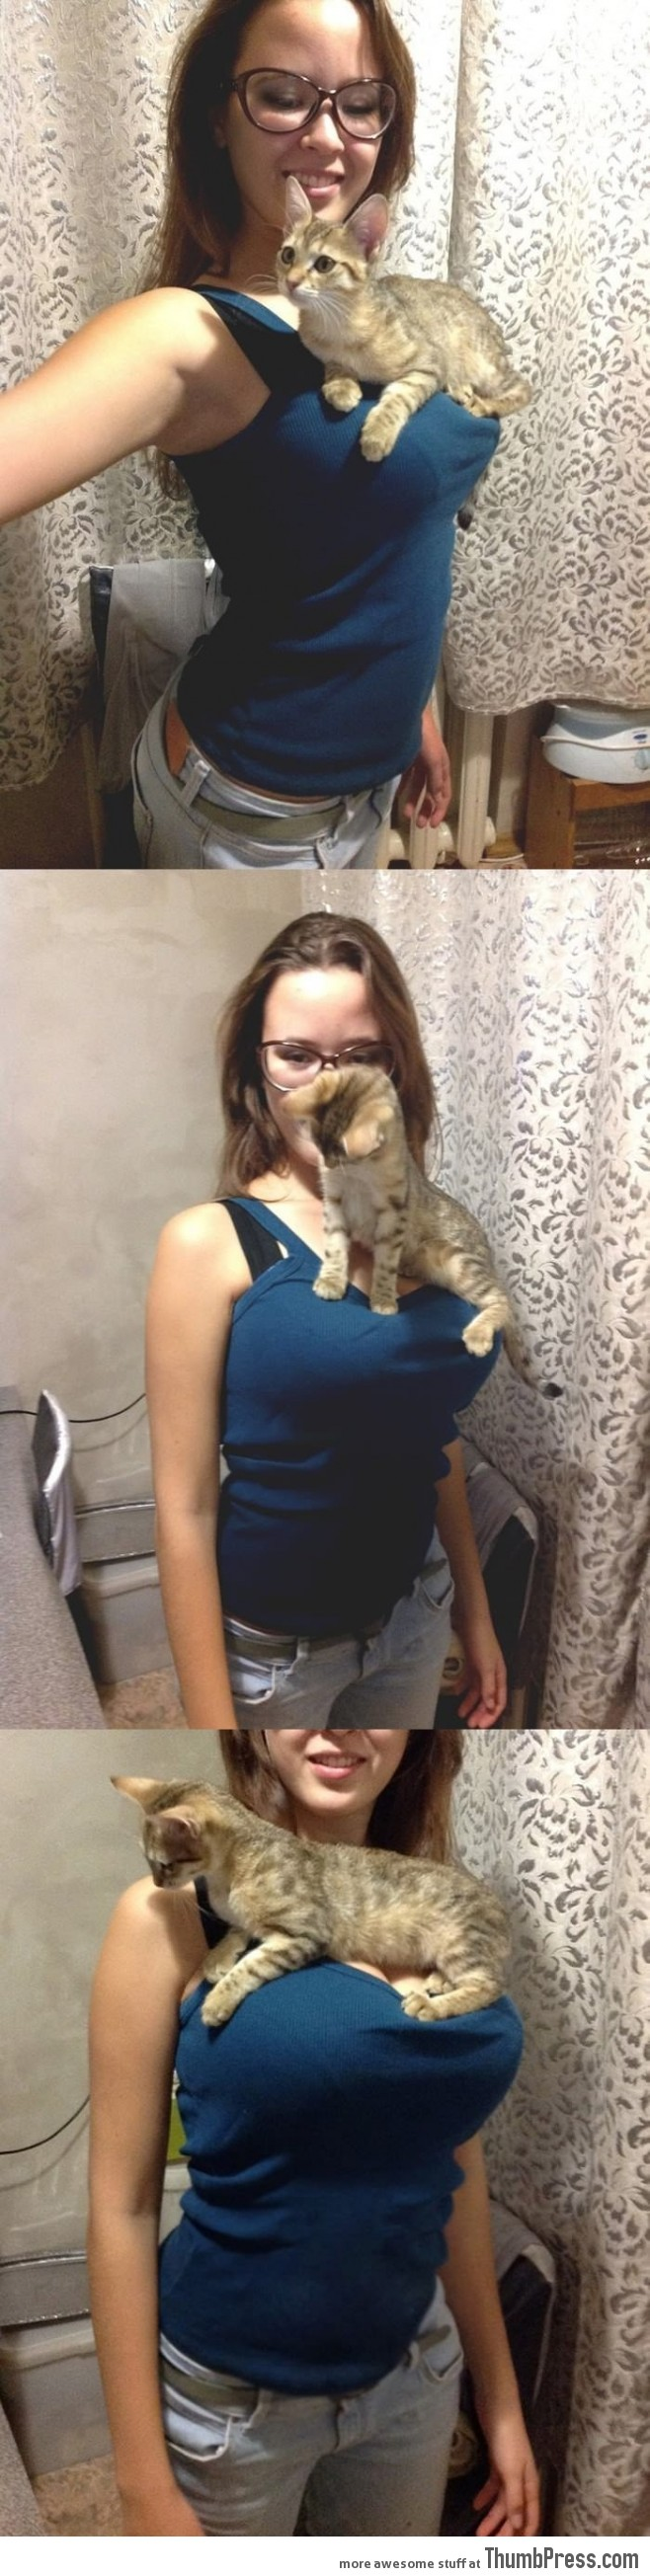 Cute cat resting on her owner's breast.